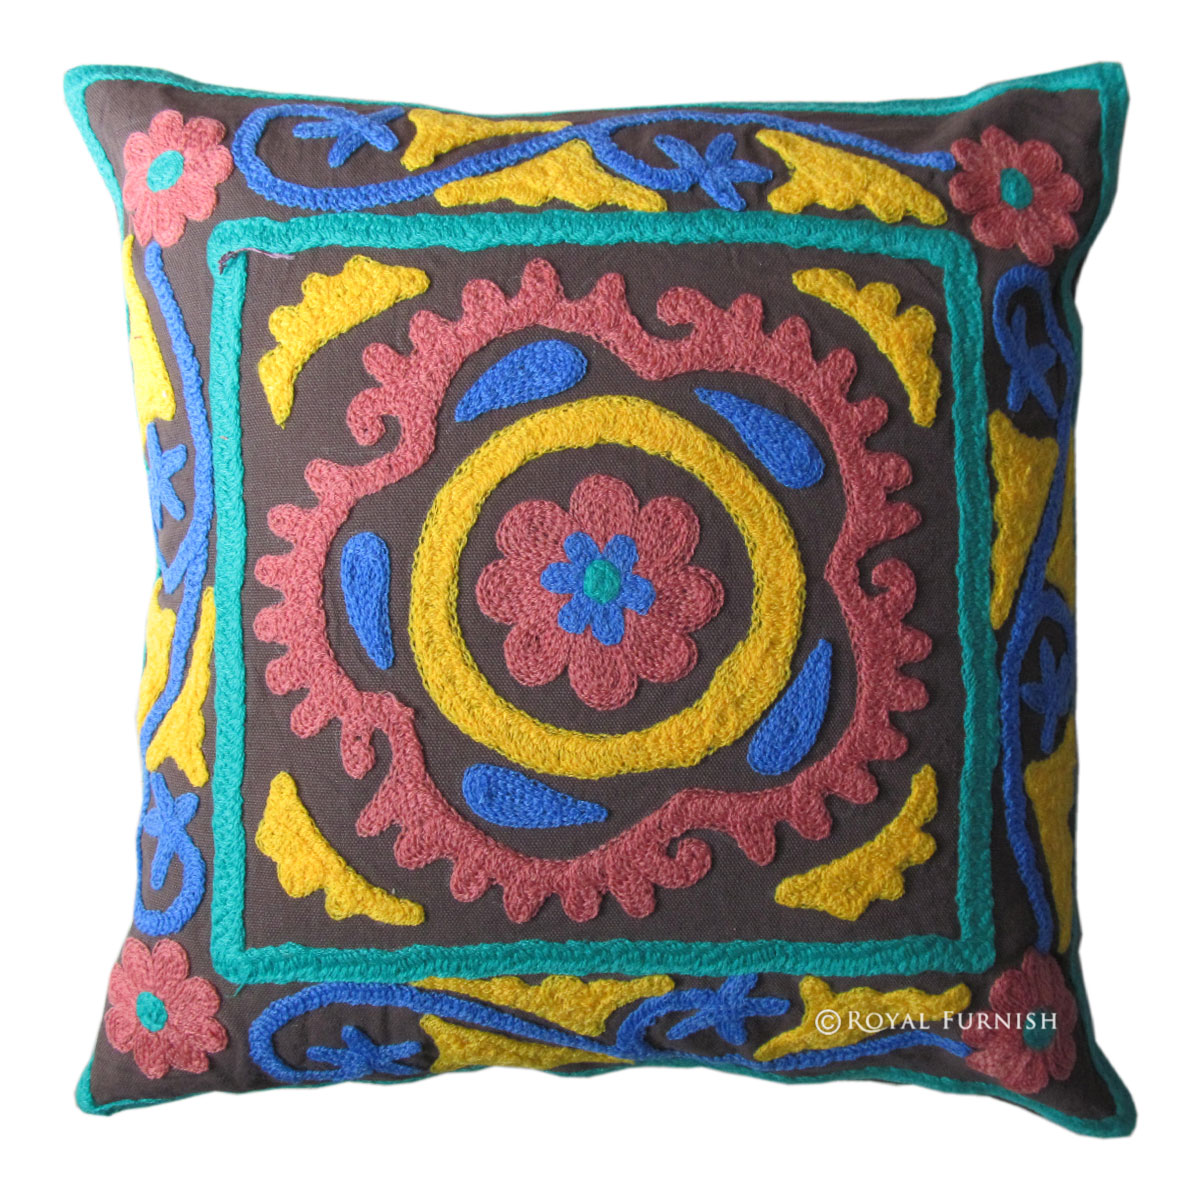 Decorative Floral Pillow Covers : 16x16 Decorative Suzani Embroidered Throw Accent Floral Pillow Cover - RoyalFurnish.com